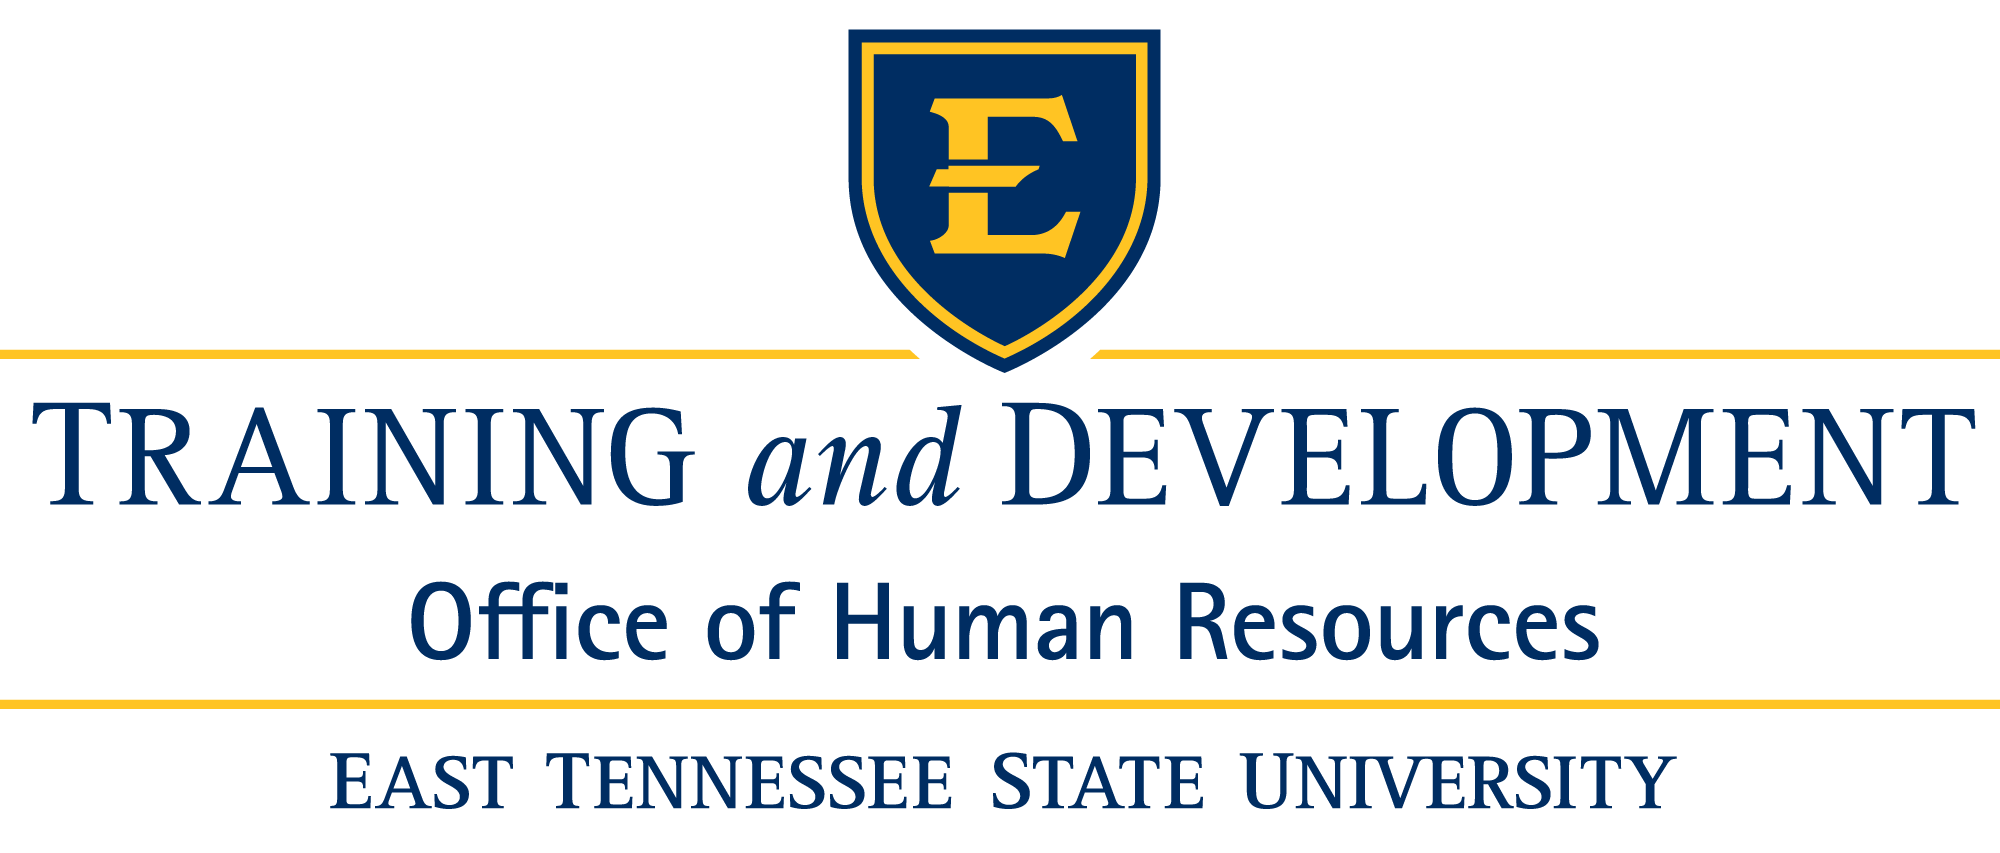 ETSU Human Resources Training and Development Logo